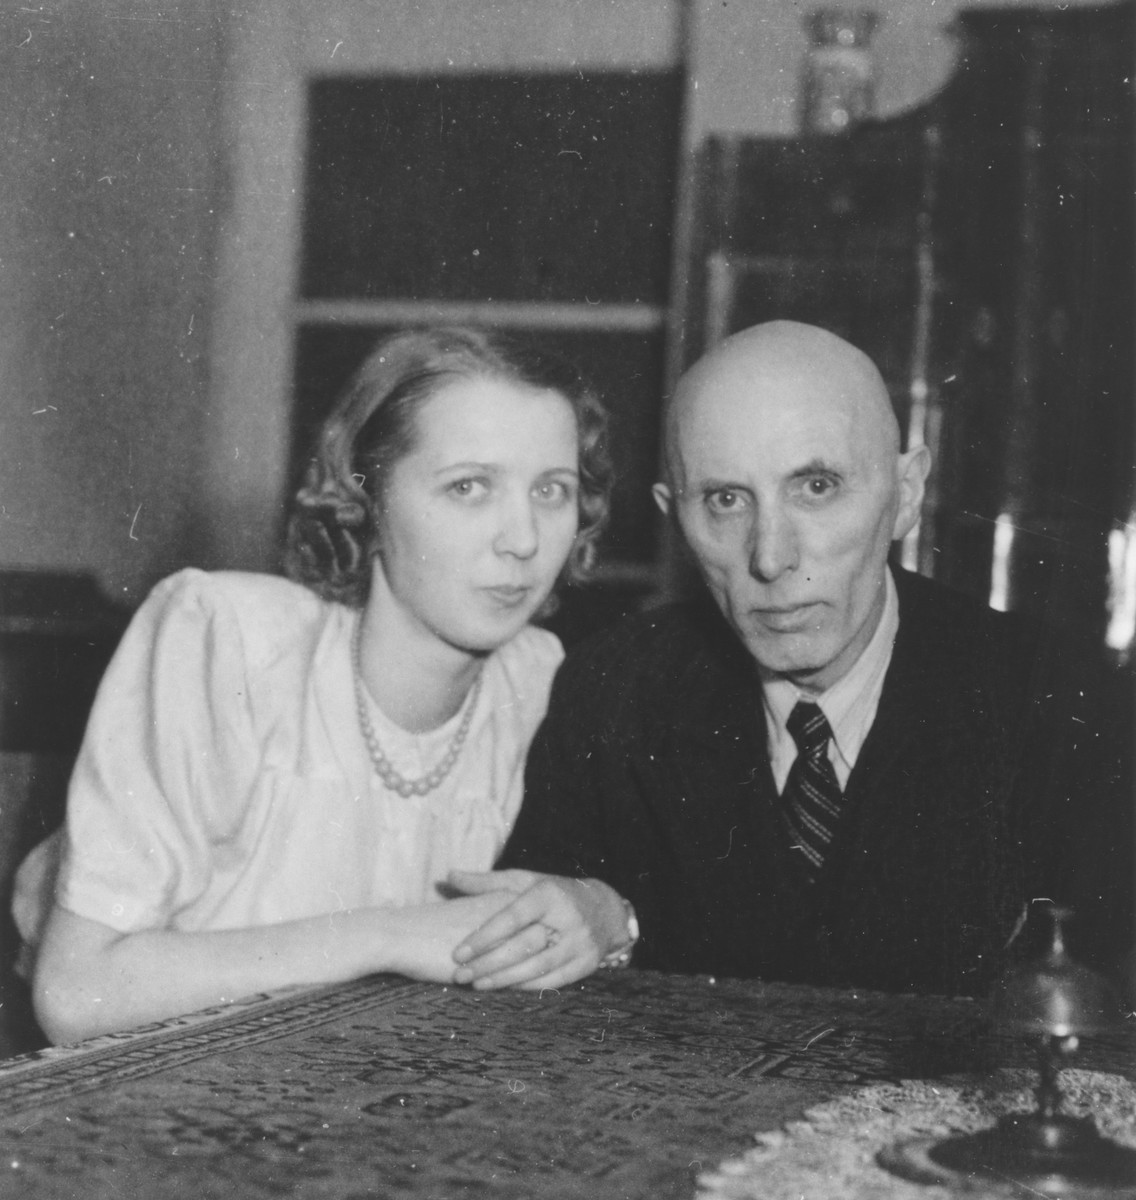 Karill Hermann poses with his daughter, Elizabeth, in their apartment in Prague during the German occupation.